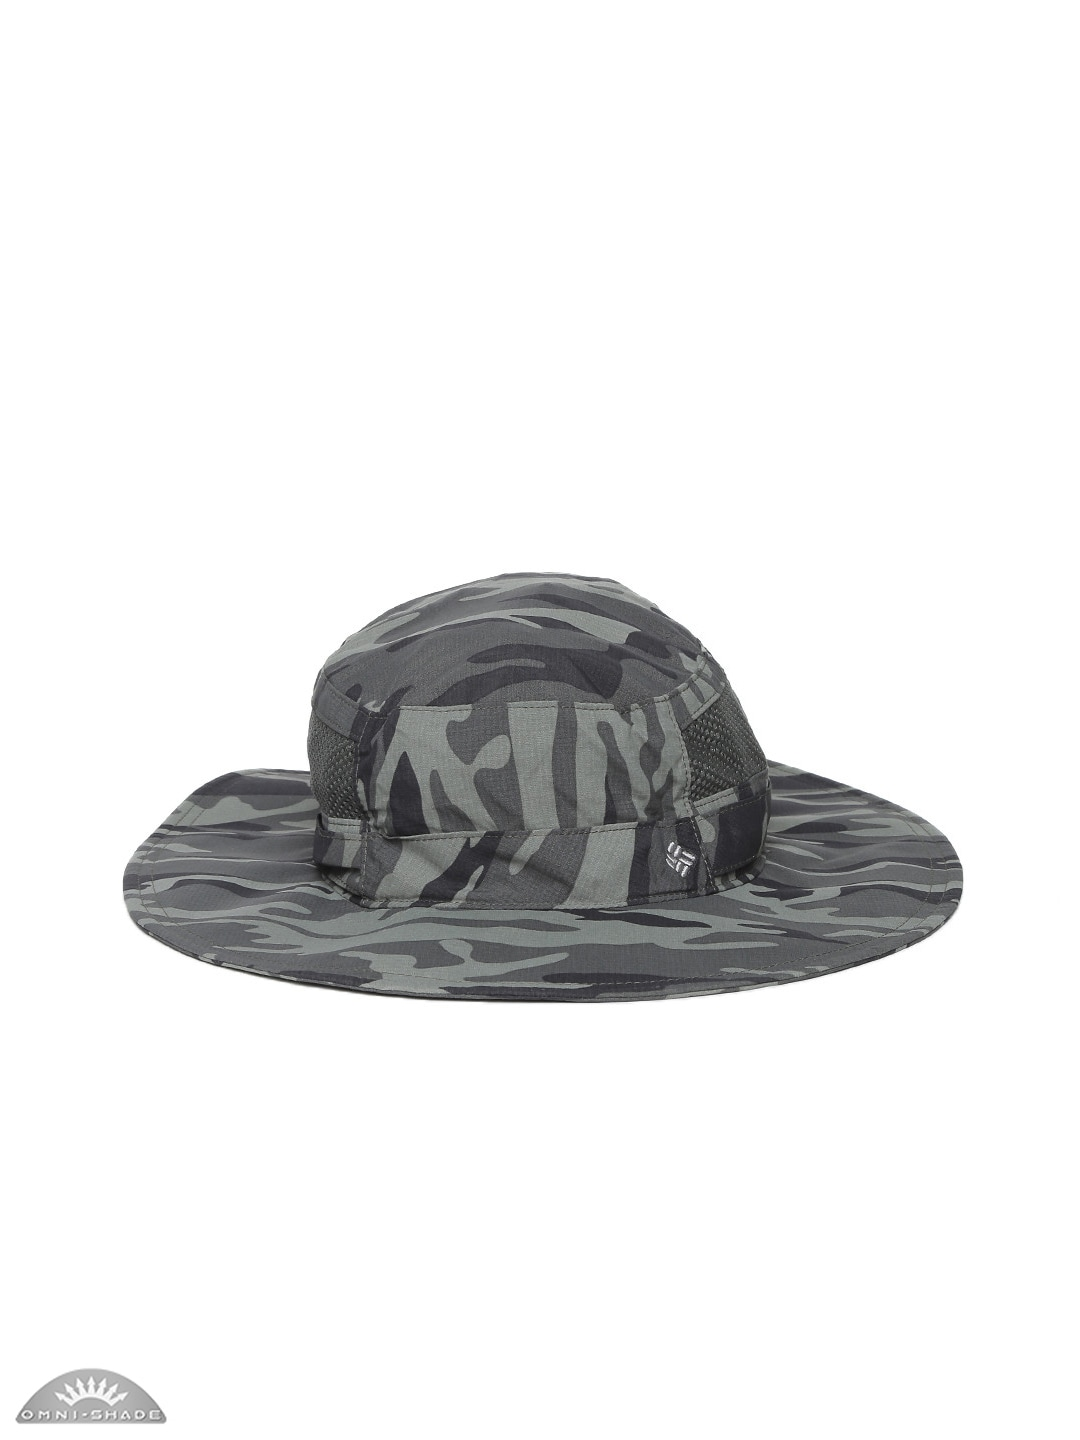 2eba4989efb Hats - Buy Hats for Men and Women Online in India - Myntra